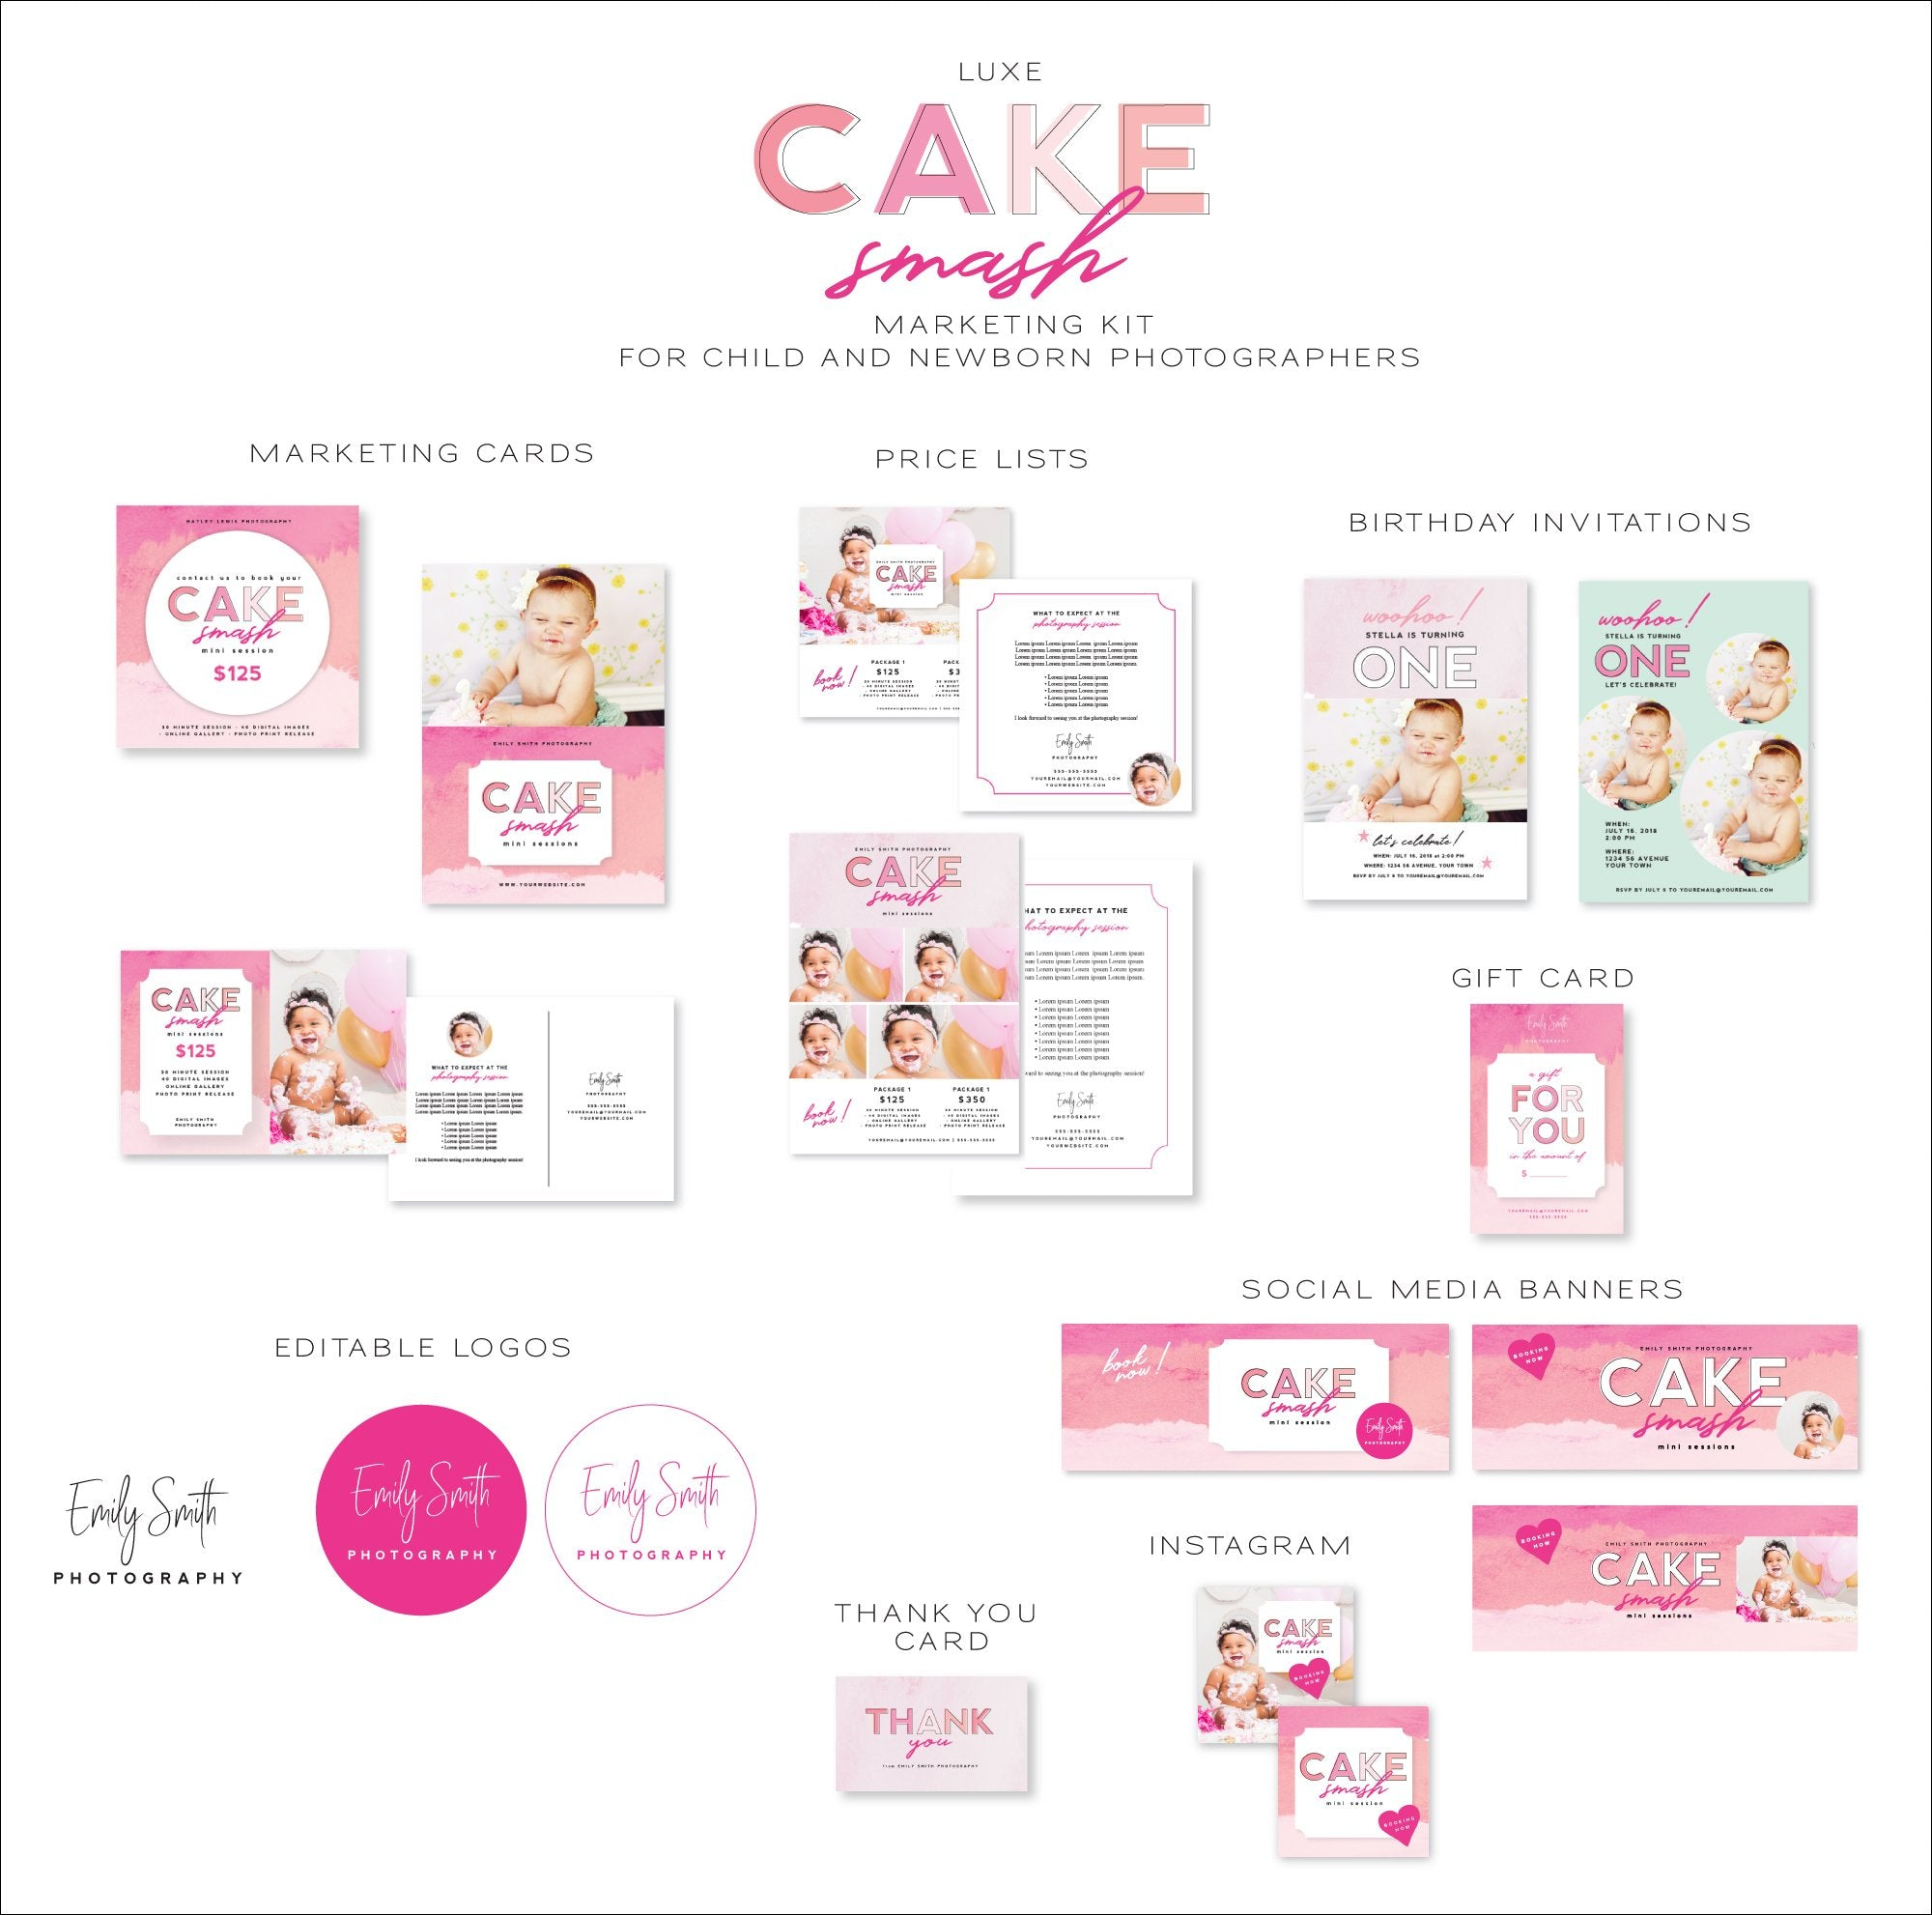 Cake Smash Marketing Kit for Child & Newborn Photographers